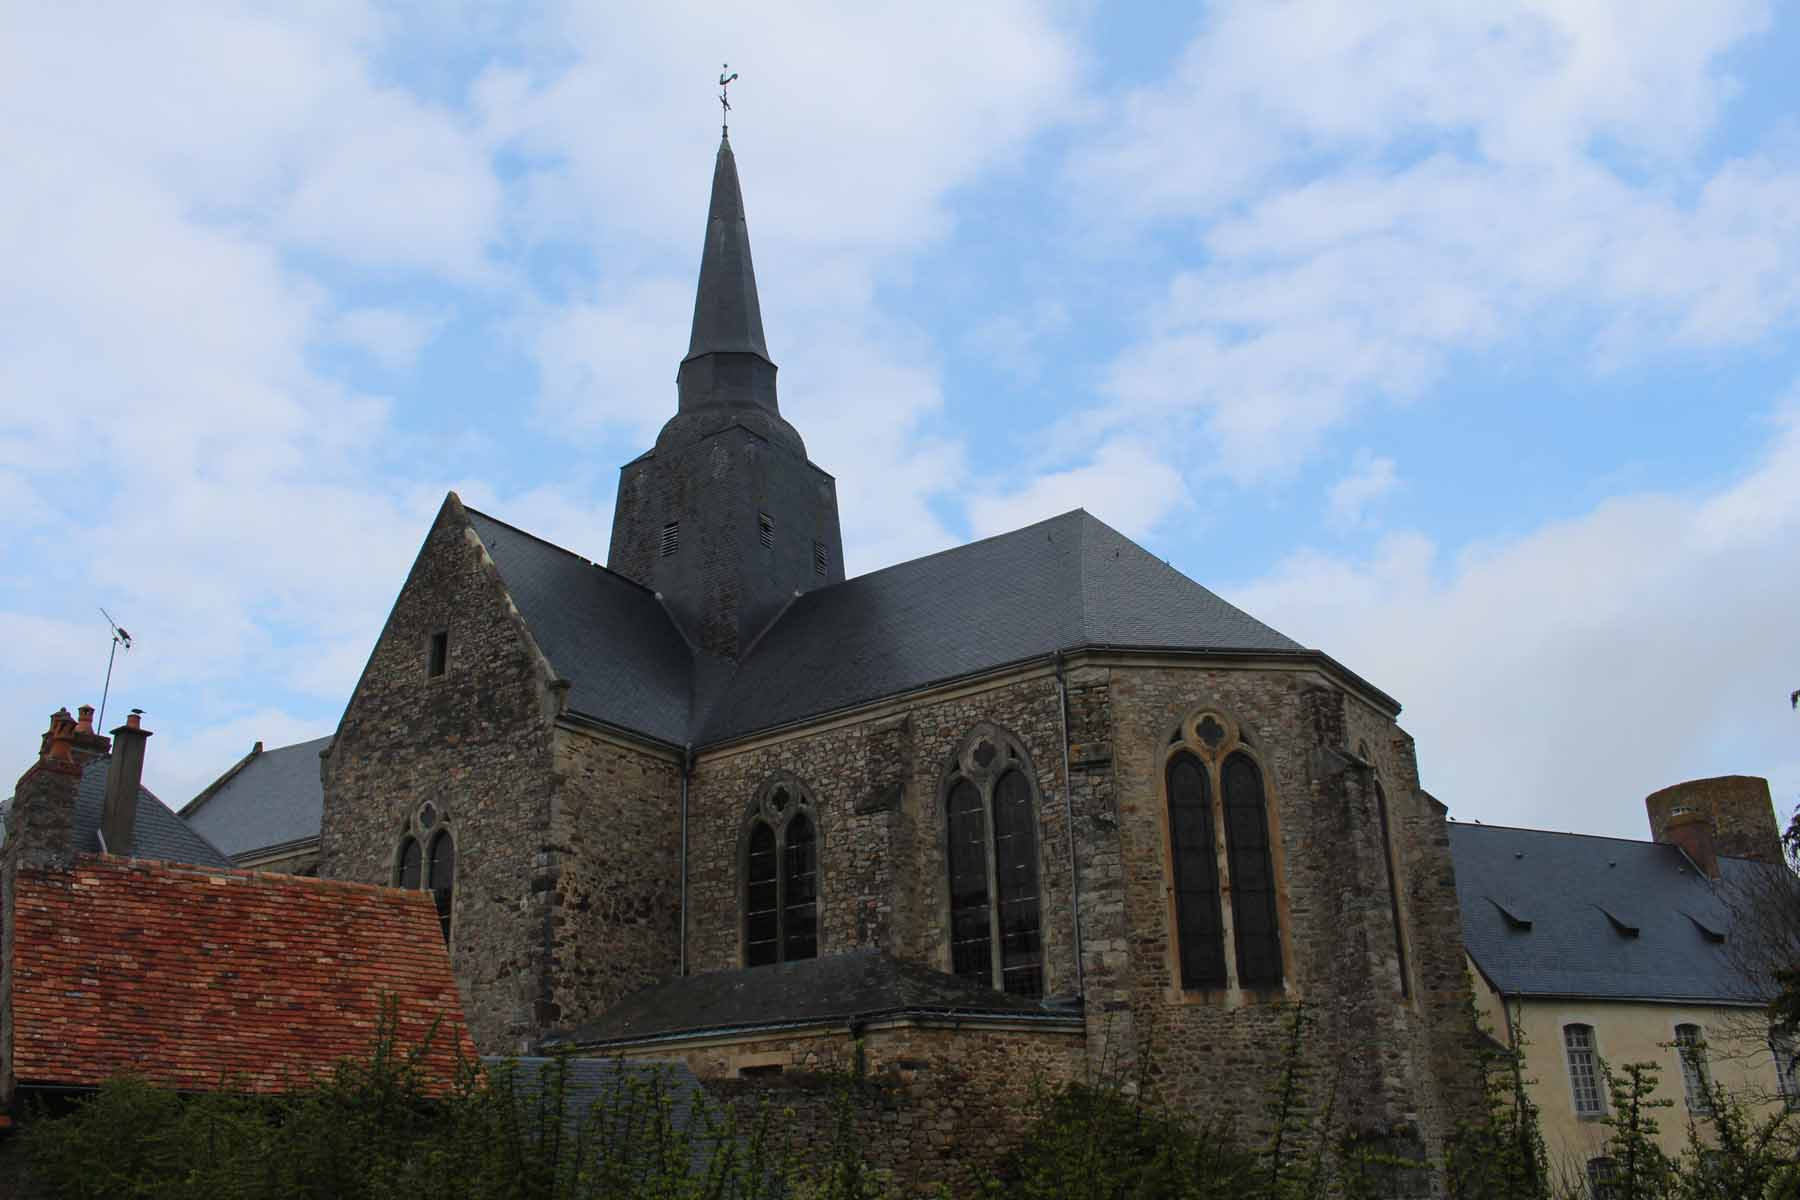 Sainte-Suzanne church, Mayenne